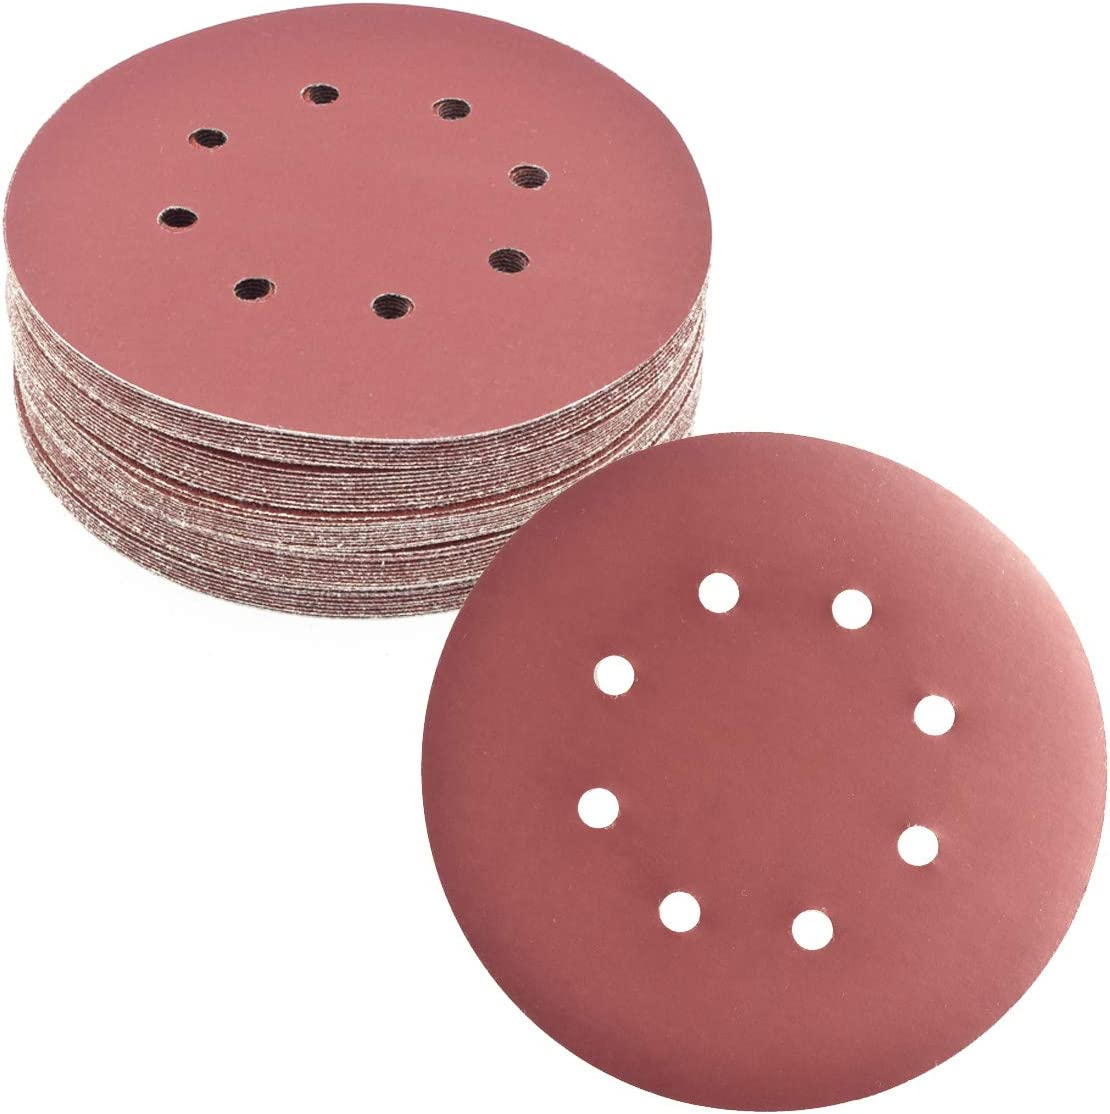 50Pcs 7 Inch 8 Hole Hook and Grit New product!! Loop Flockin Max 57% OFF 2000 Sanding Disc